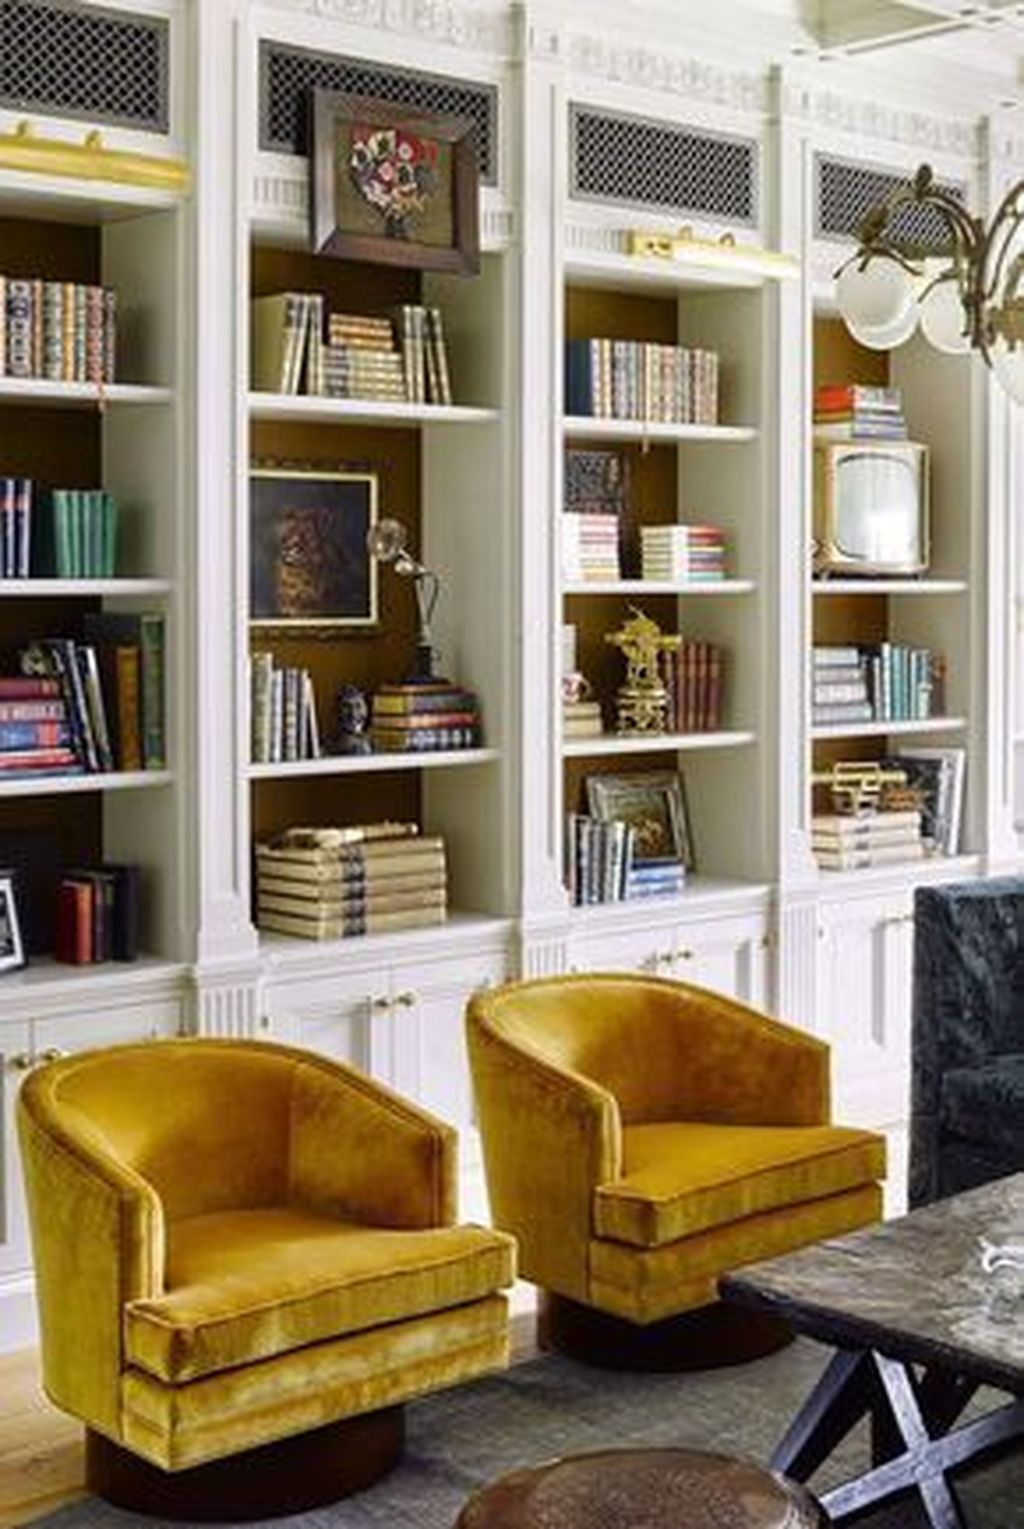 Charming Yellow Interior Design Ideas Best For Summer 32